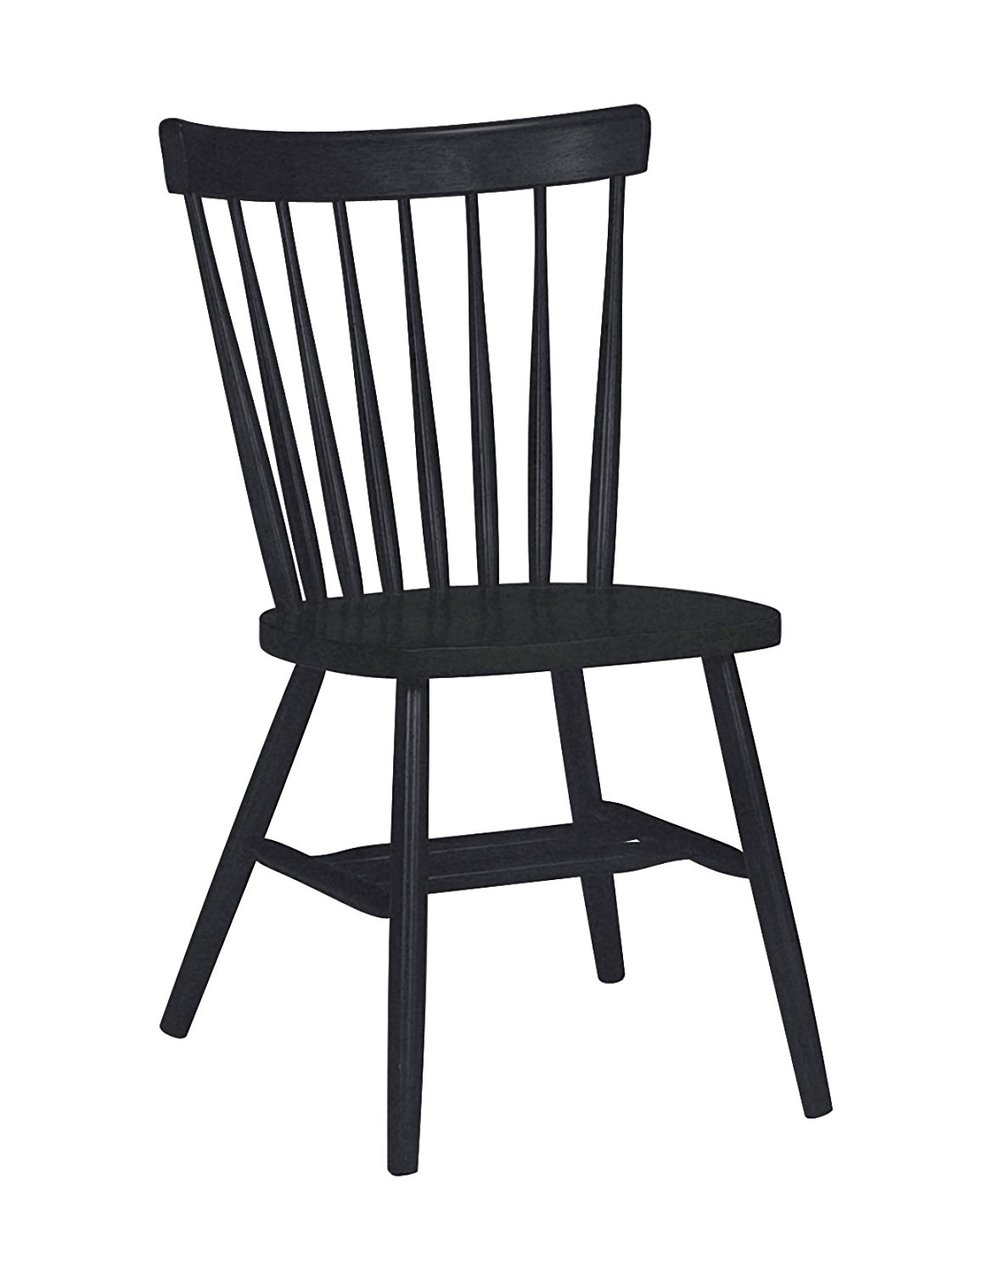 Amazon Chairs 4.jpg